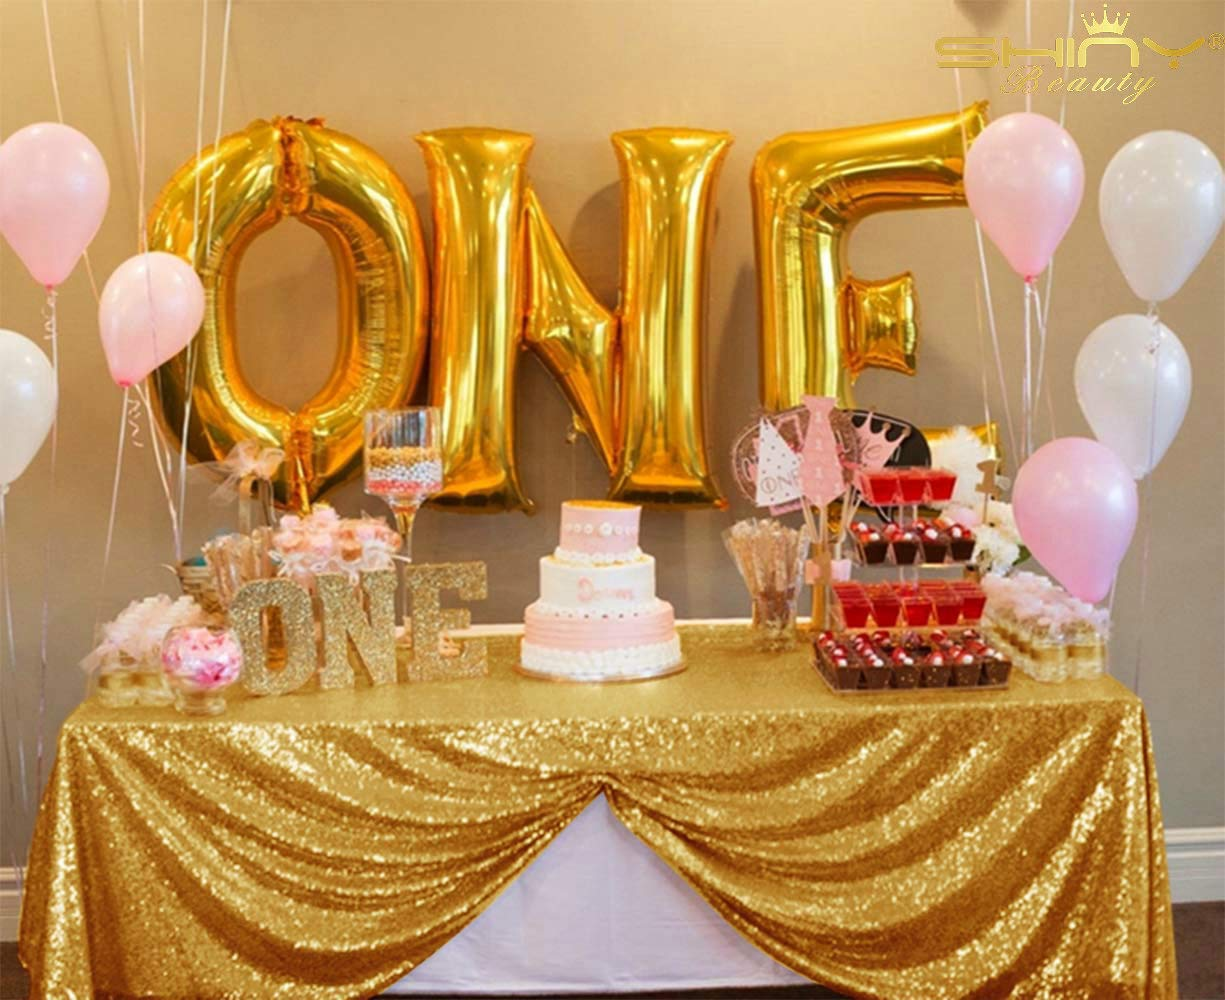 Crisky Stripe Sequin Tablecloth Gold Glitter Tablecloth Gold Party Supplies Fabric Decorations for Wedding Birthday Baby Shower